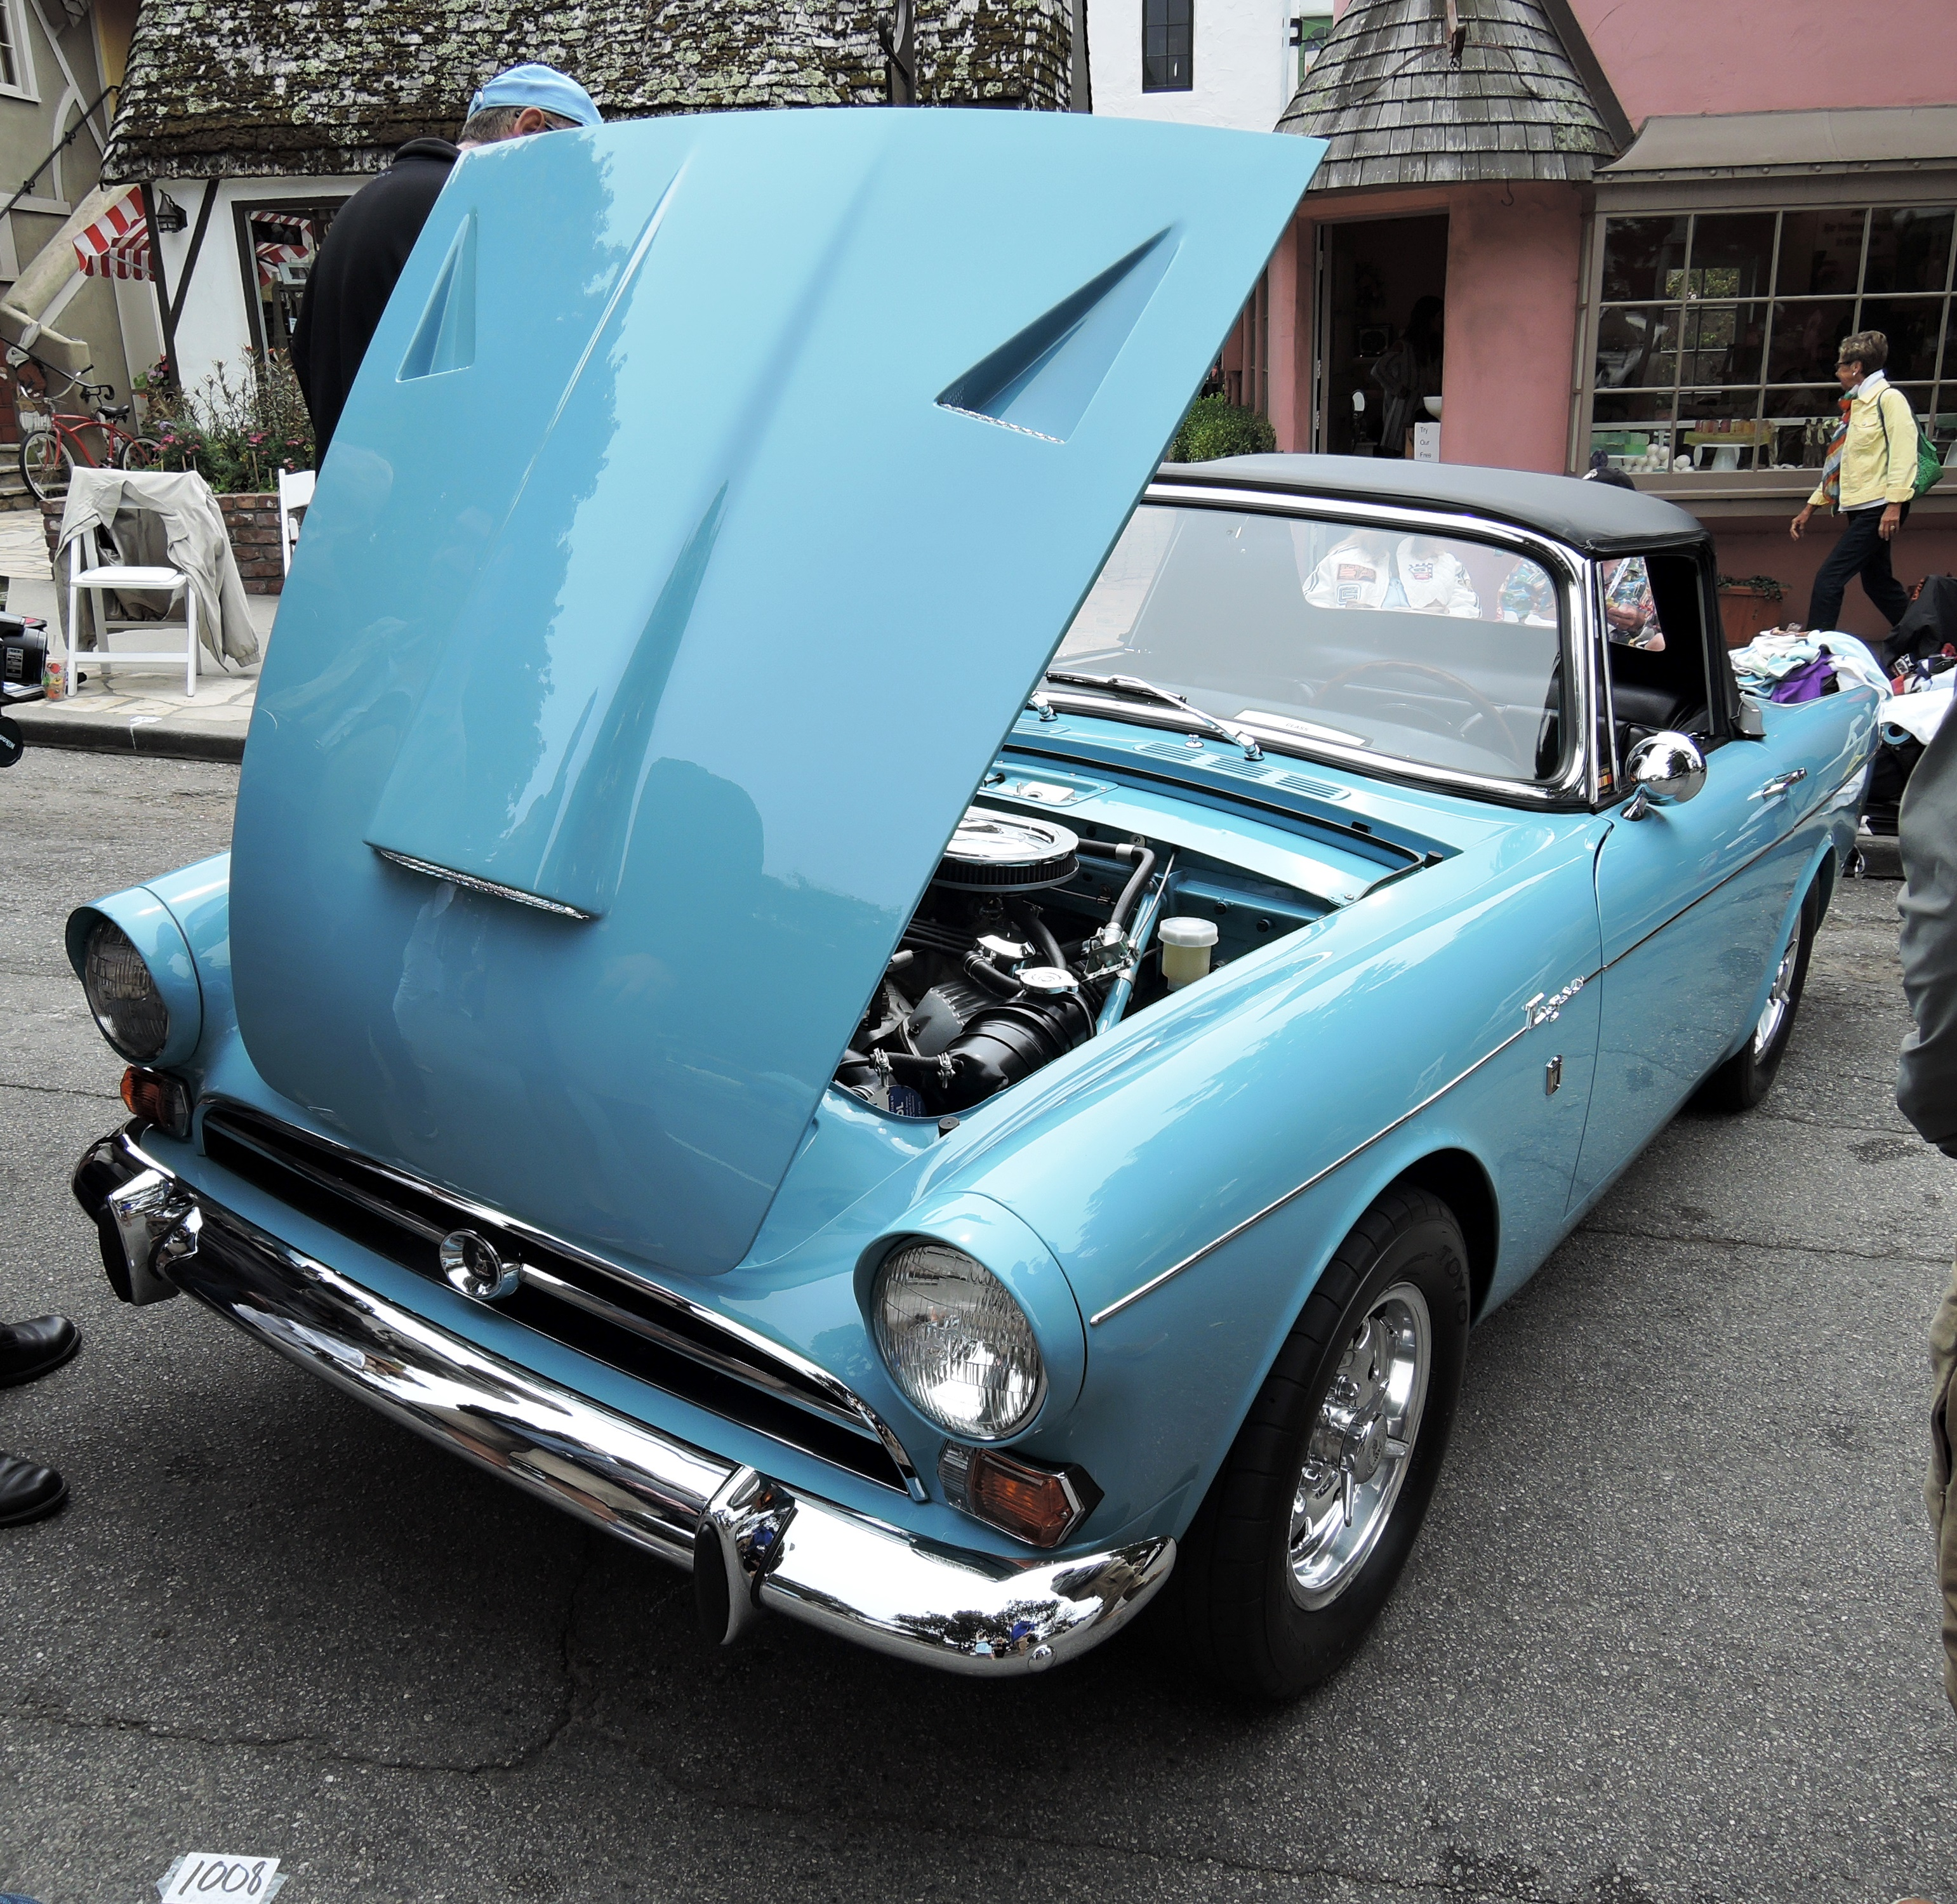 blue 1966 Sunbeam Tiger - Concours on the Ave Carmel